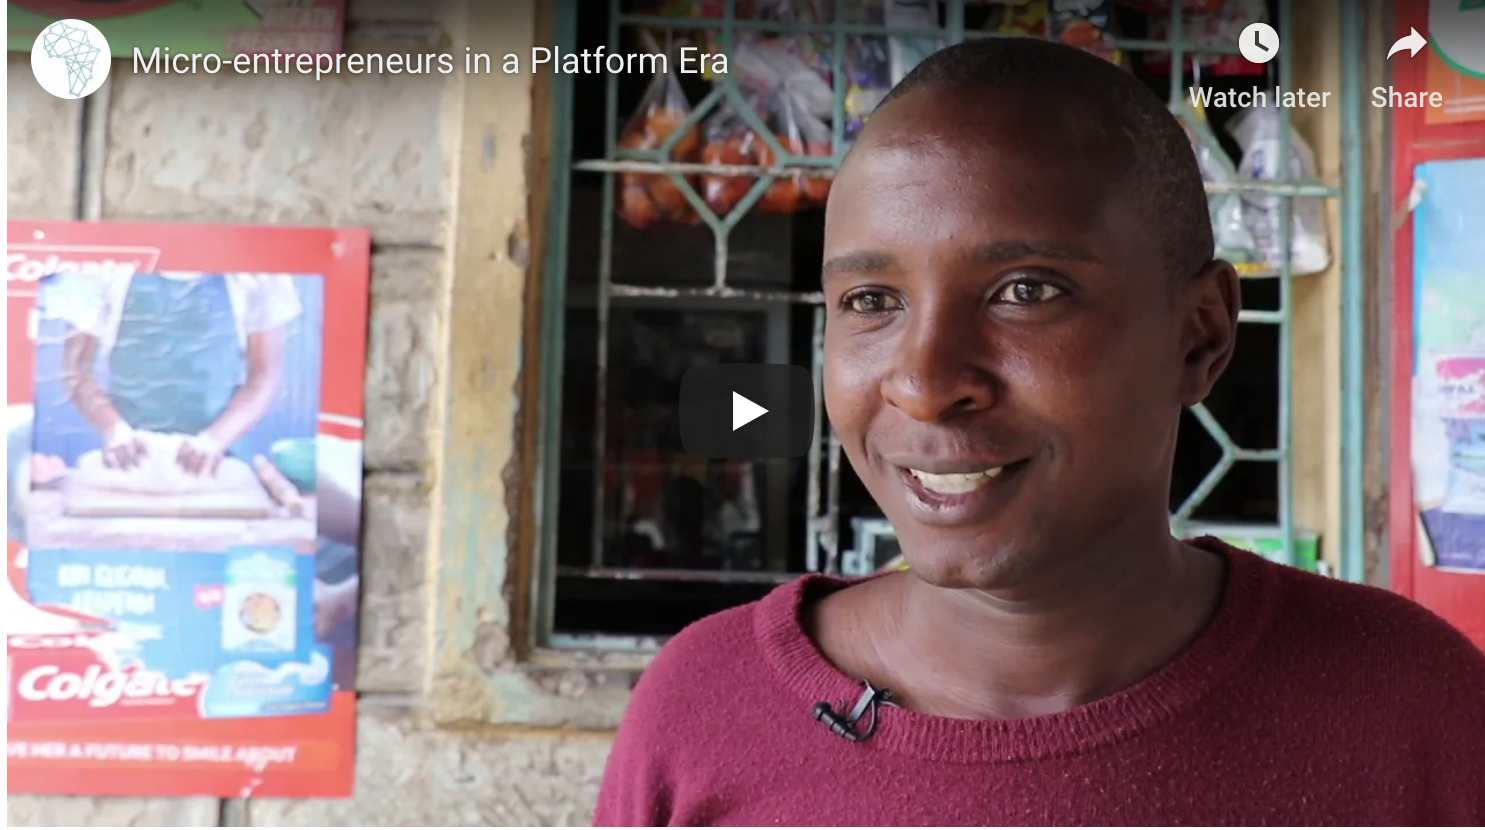 Understanding the platform practises of micro-entrepreneurs in Kenya: Mastercard Foundation (image)